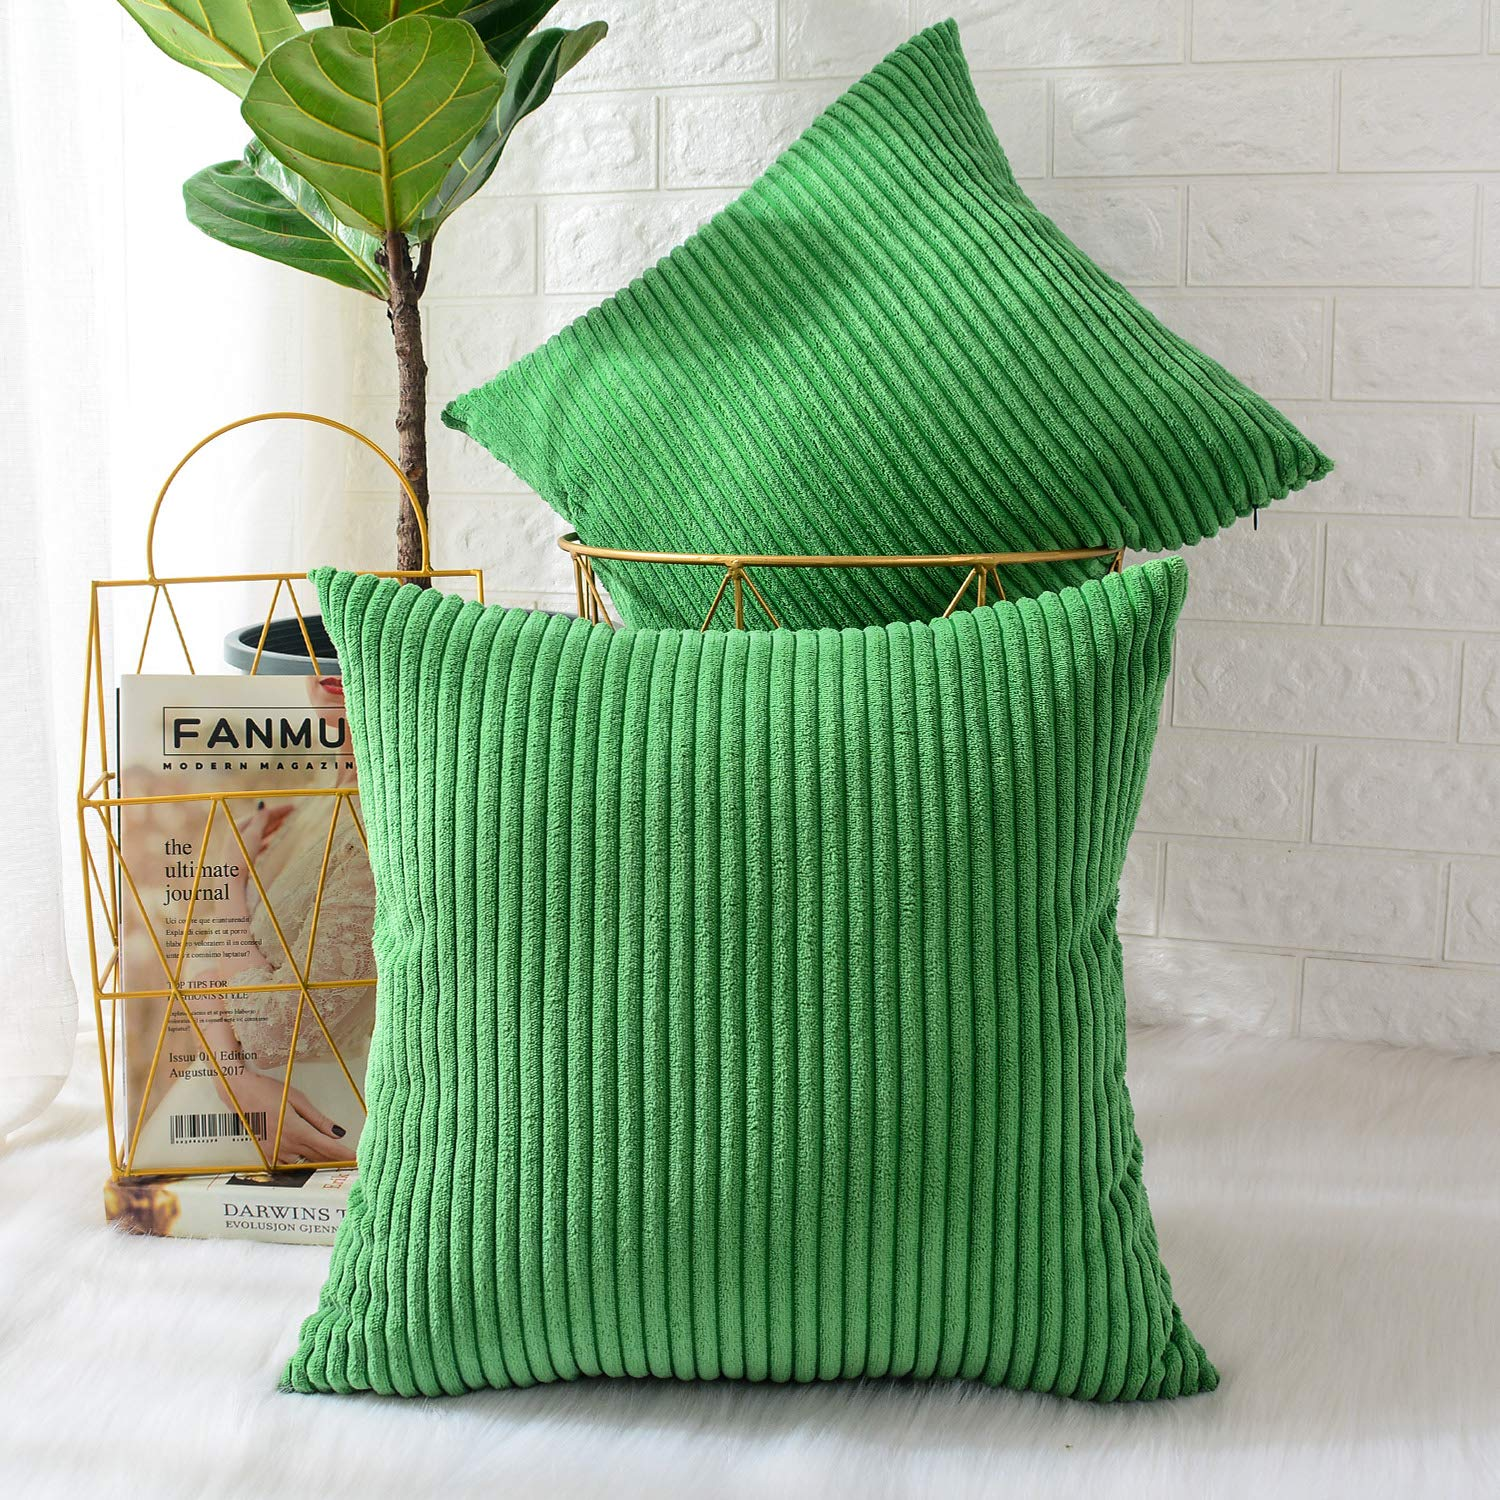 MERNETTE New Year/Christmas Decorations Corduroy Soft Decorative Square Throw Pillow Cover Cushion Covers Pillowcase, Home Decor for Party/Xmas 24x24 Inch/60x60 cm, Pine Green, Set of 2